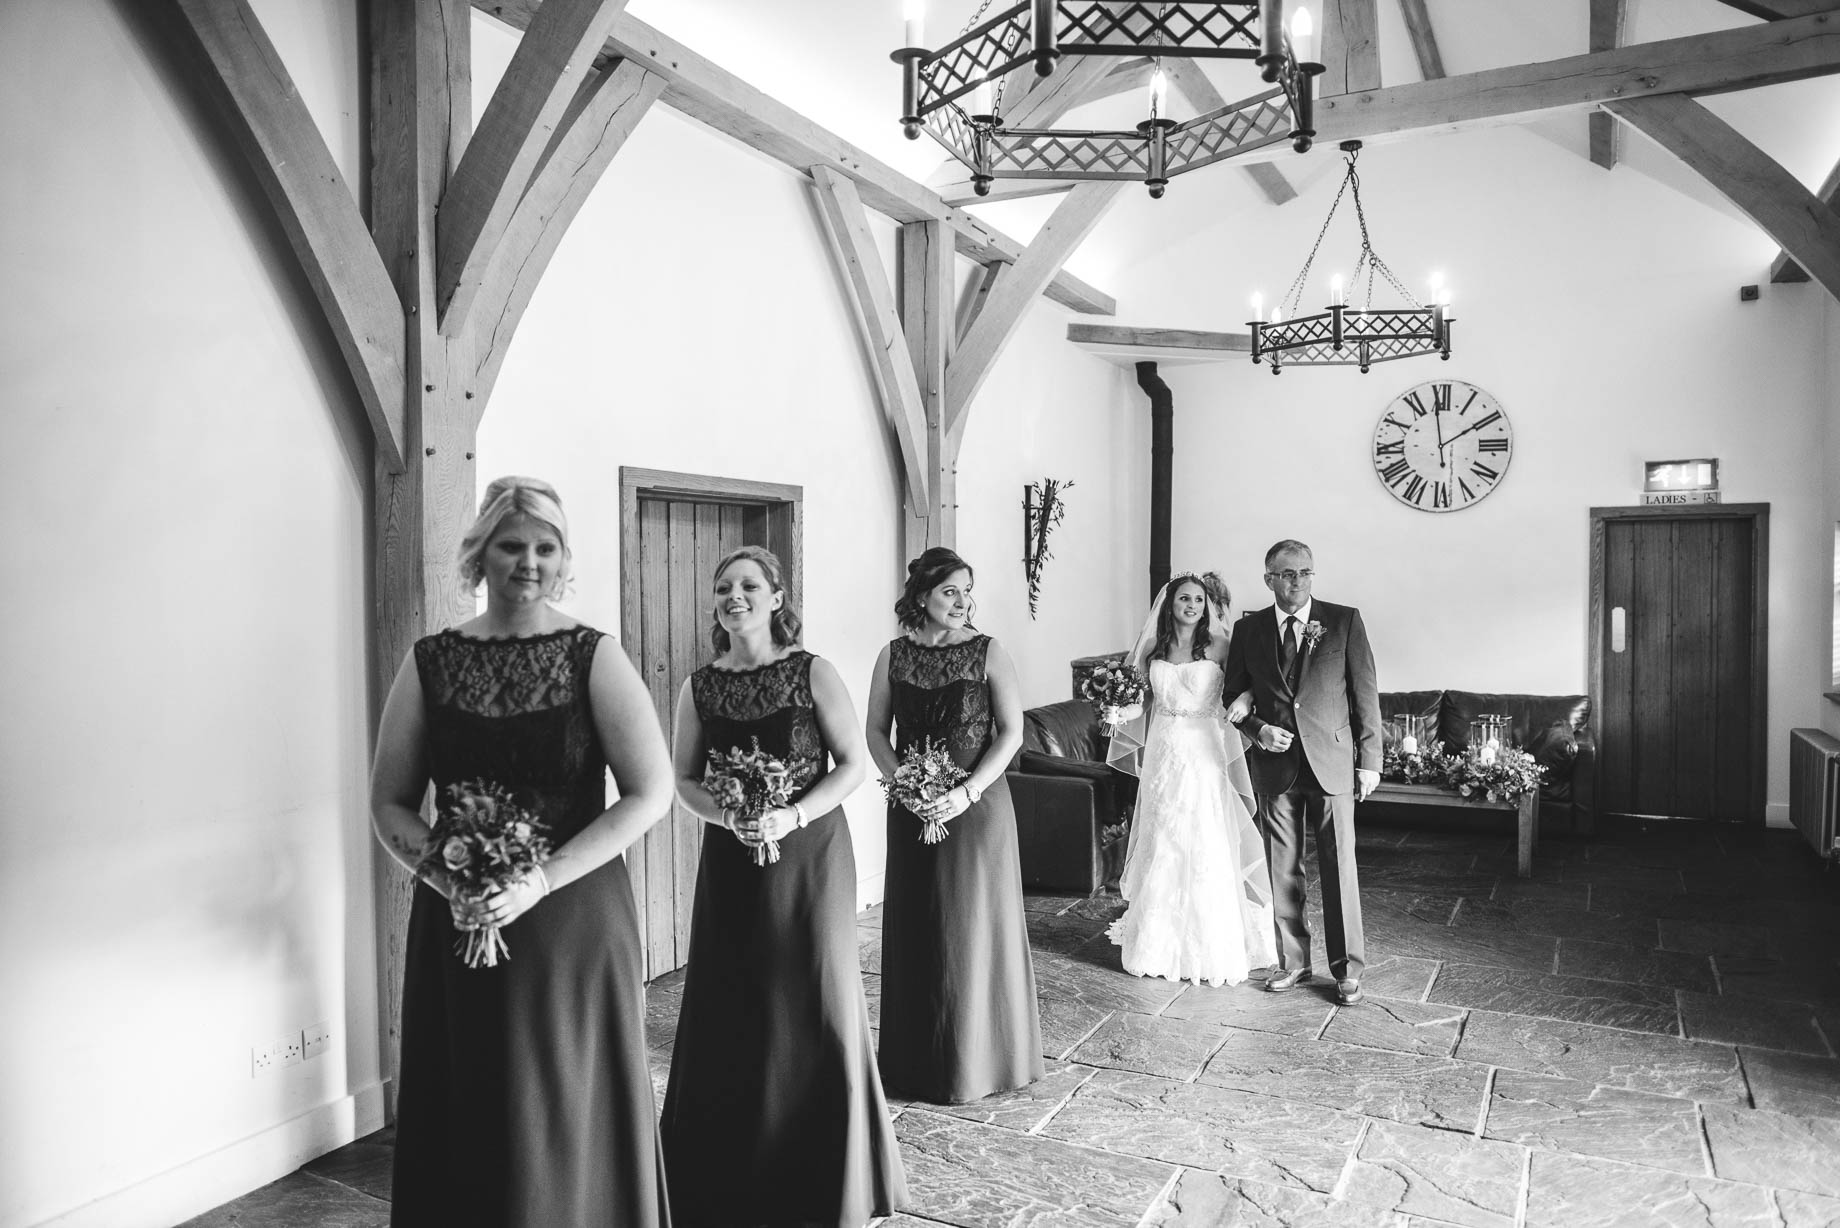 Gate Street Barn wedding photography - Guy Collier - Claire and Andy (49 of 192)